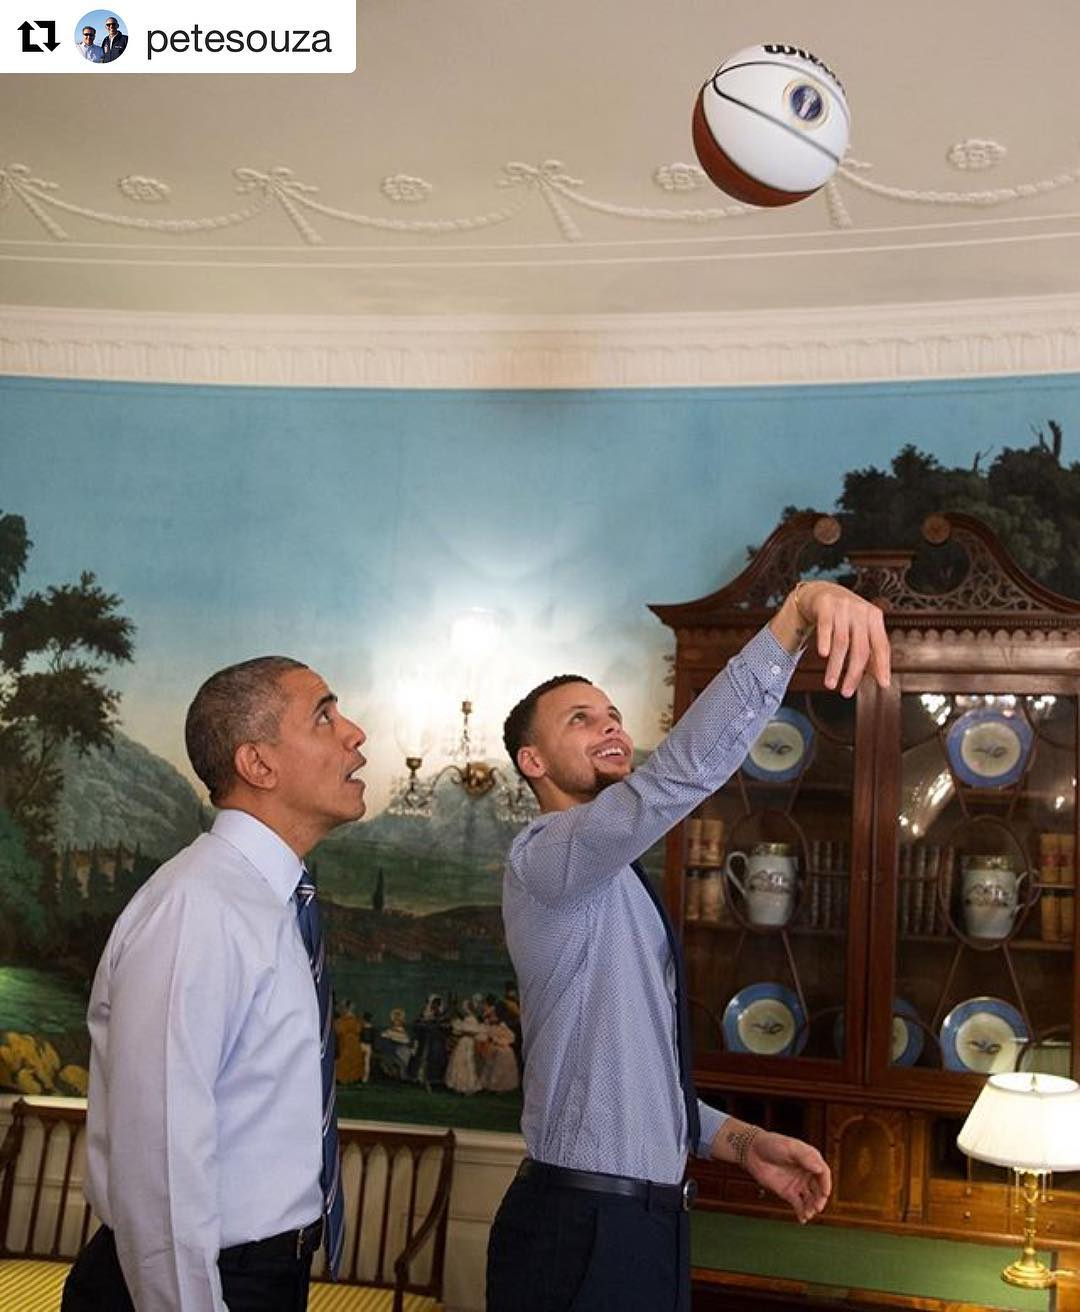 Repost petesouza  President Obama with Steph Curry last yearhellip